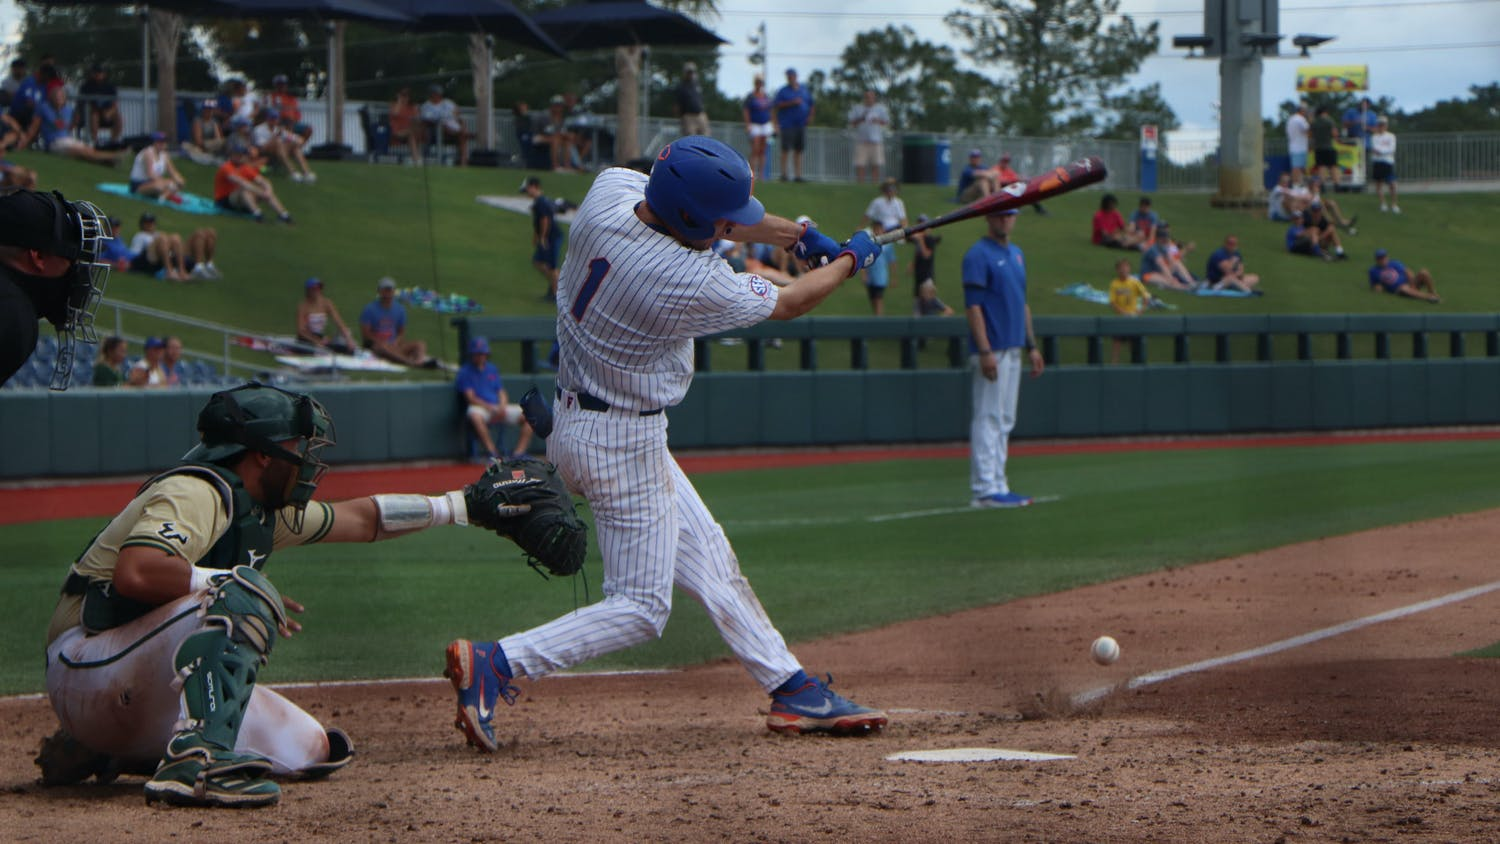 Jacob Young swings against USF. The Gators lost to the Bulls 5-3 Friday.